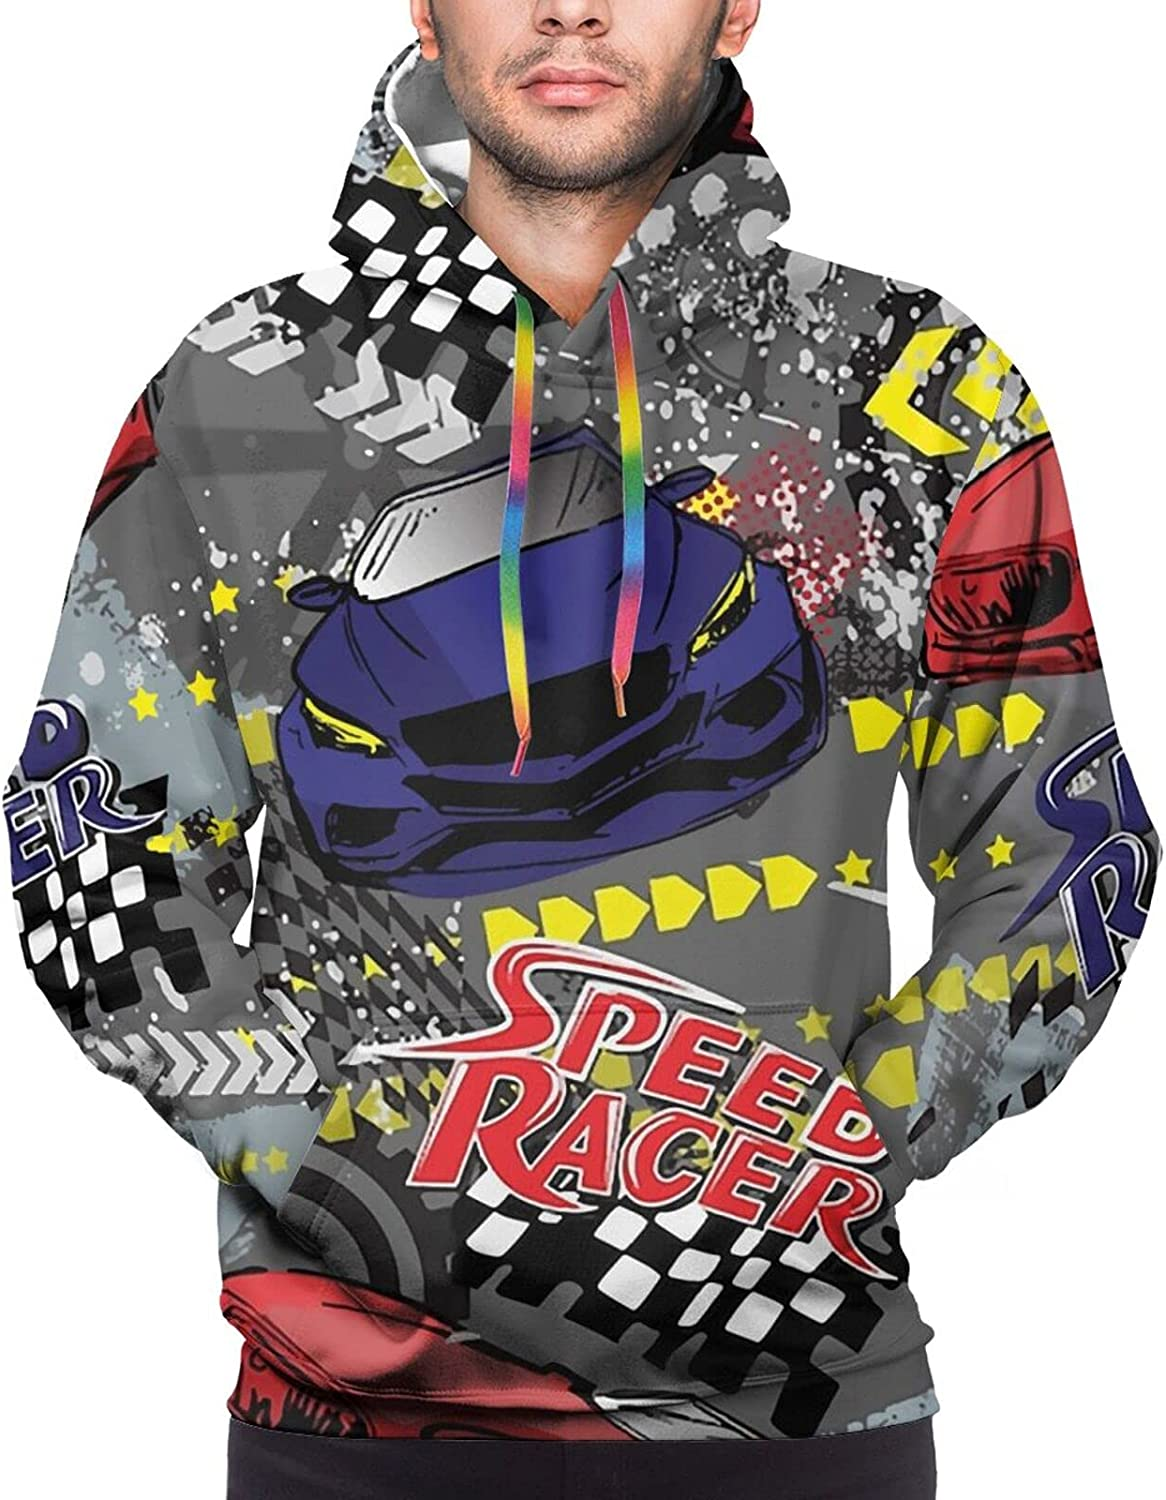 Hoodie For Teens Boys Girls Abstract Cars Shabby Texture Hoodies Outdoor Sports Sweater